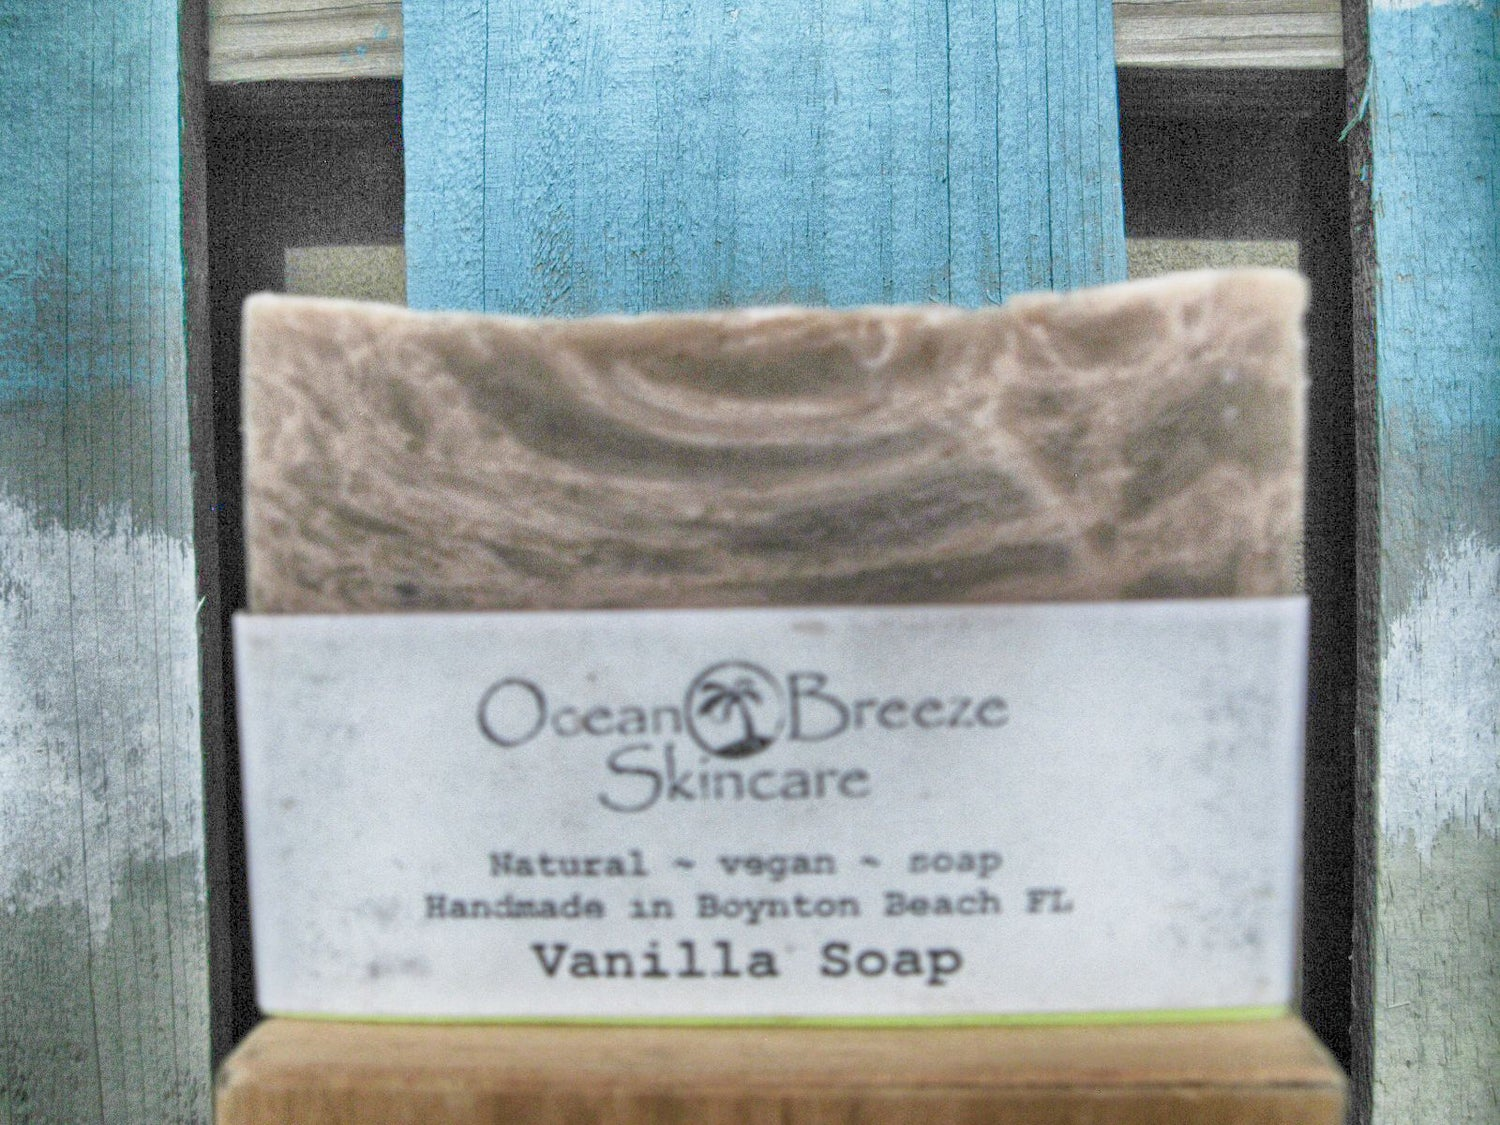 Image of Vanilla Soap